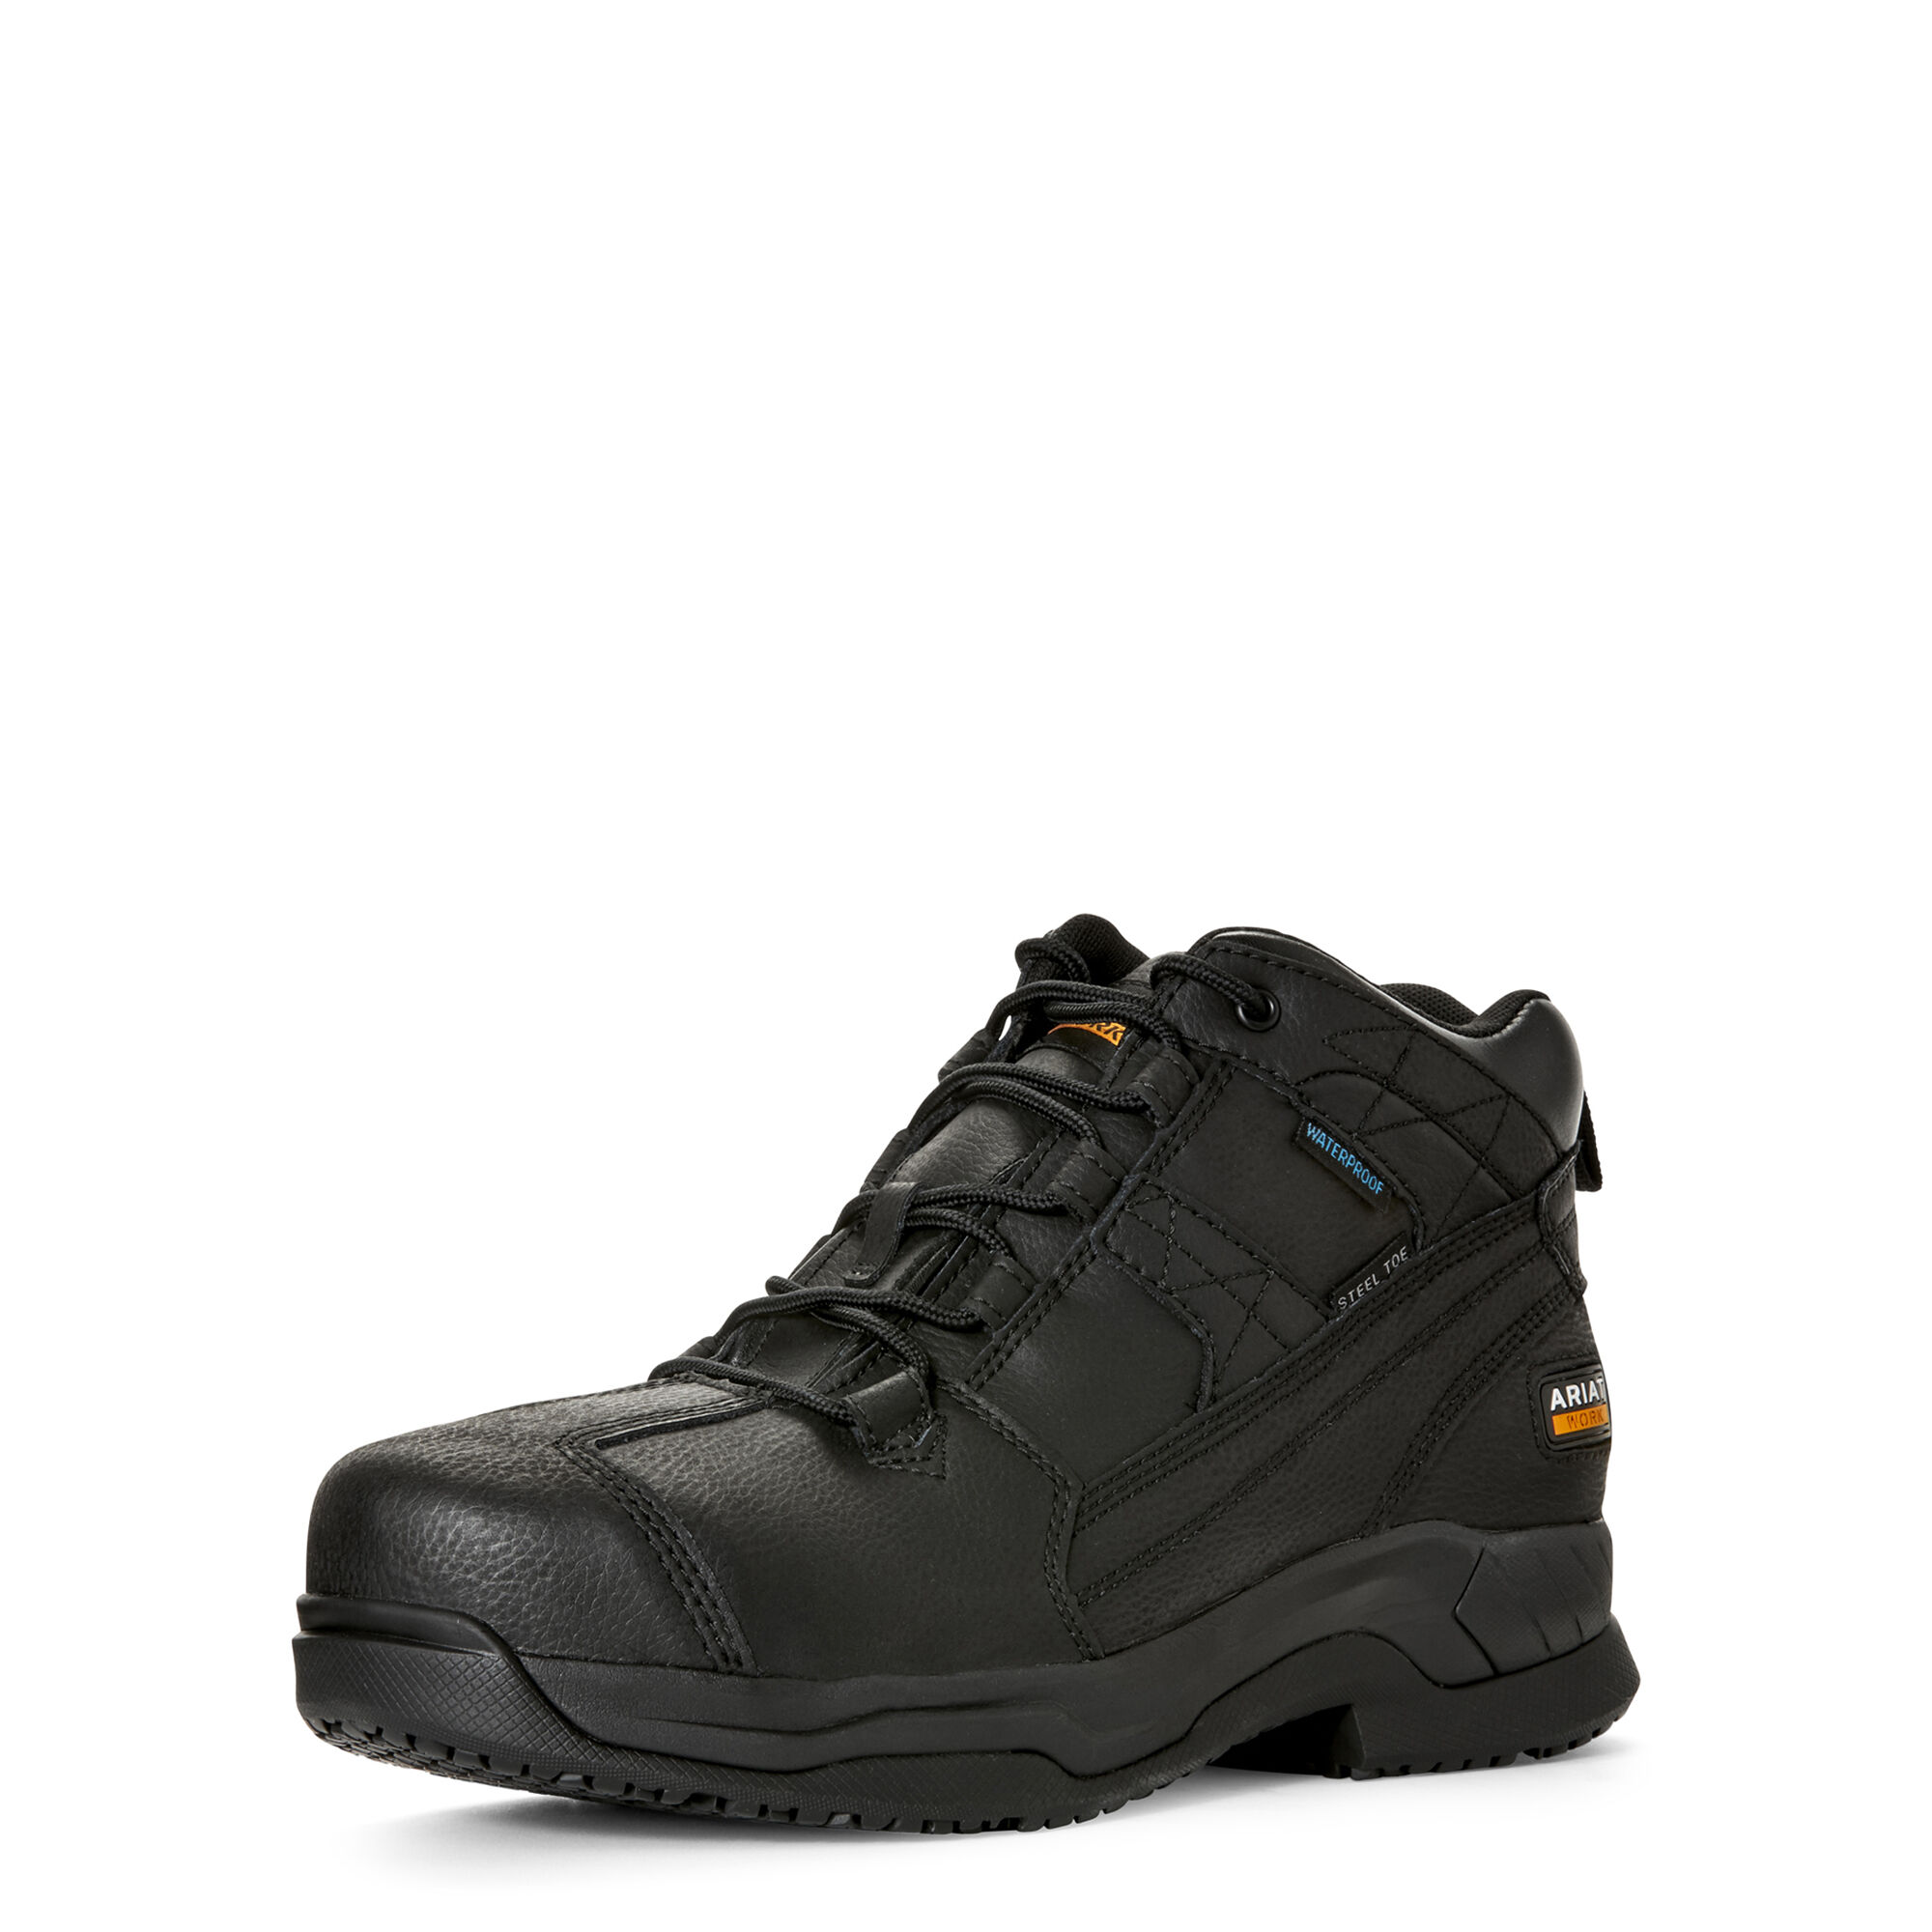 Contender Waterproof Steel Toe Work Boot